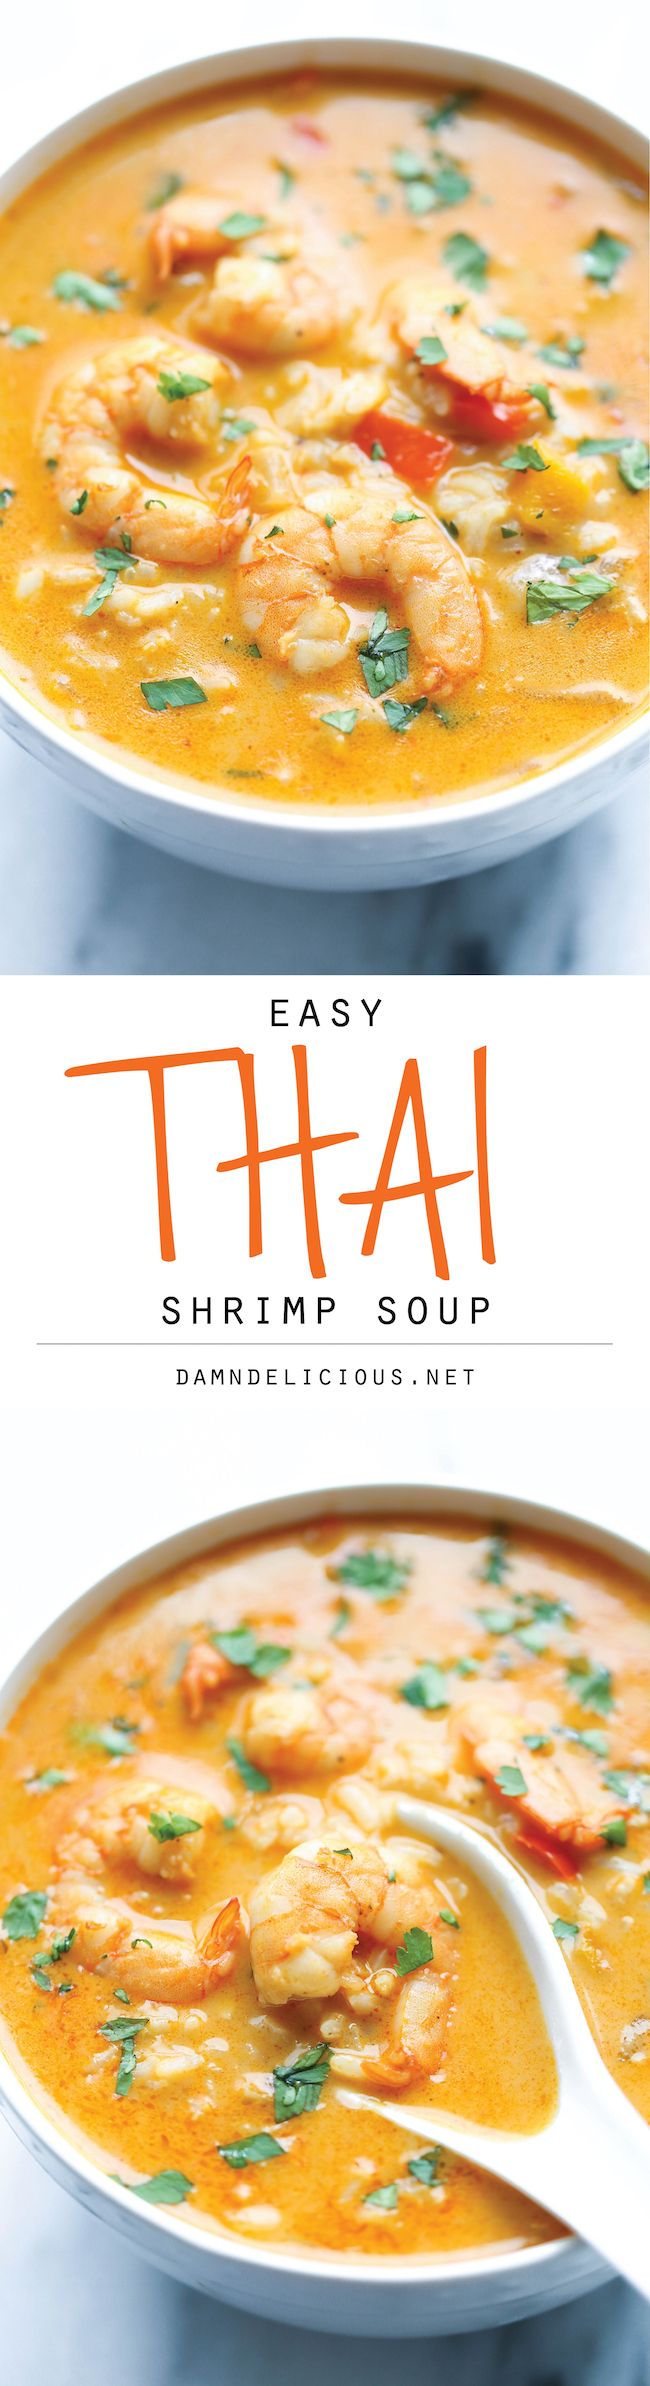 Easy Thai Shrimp Soup - Skip the take-out and try making this at home - its unbelievably easy and 10000x tastier and healthier!